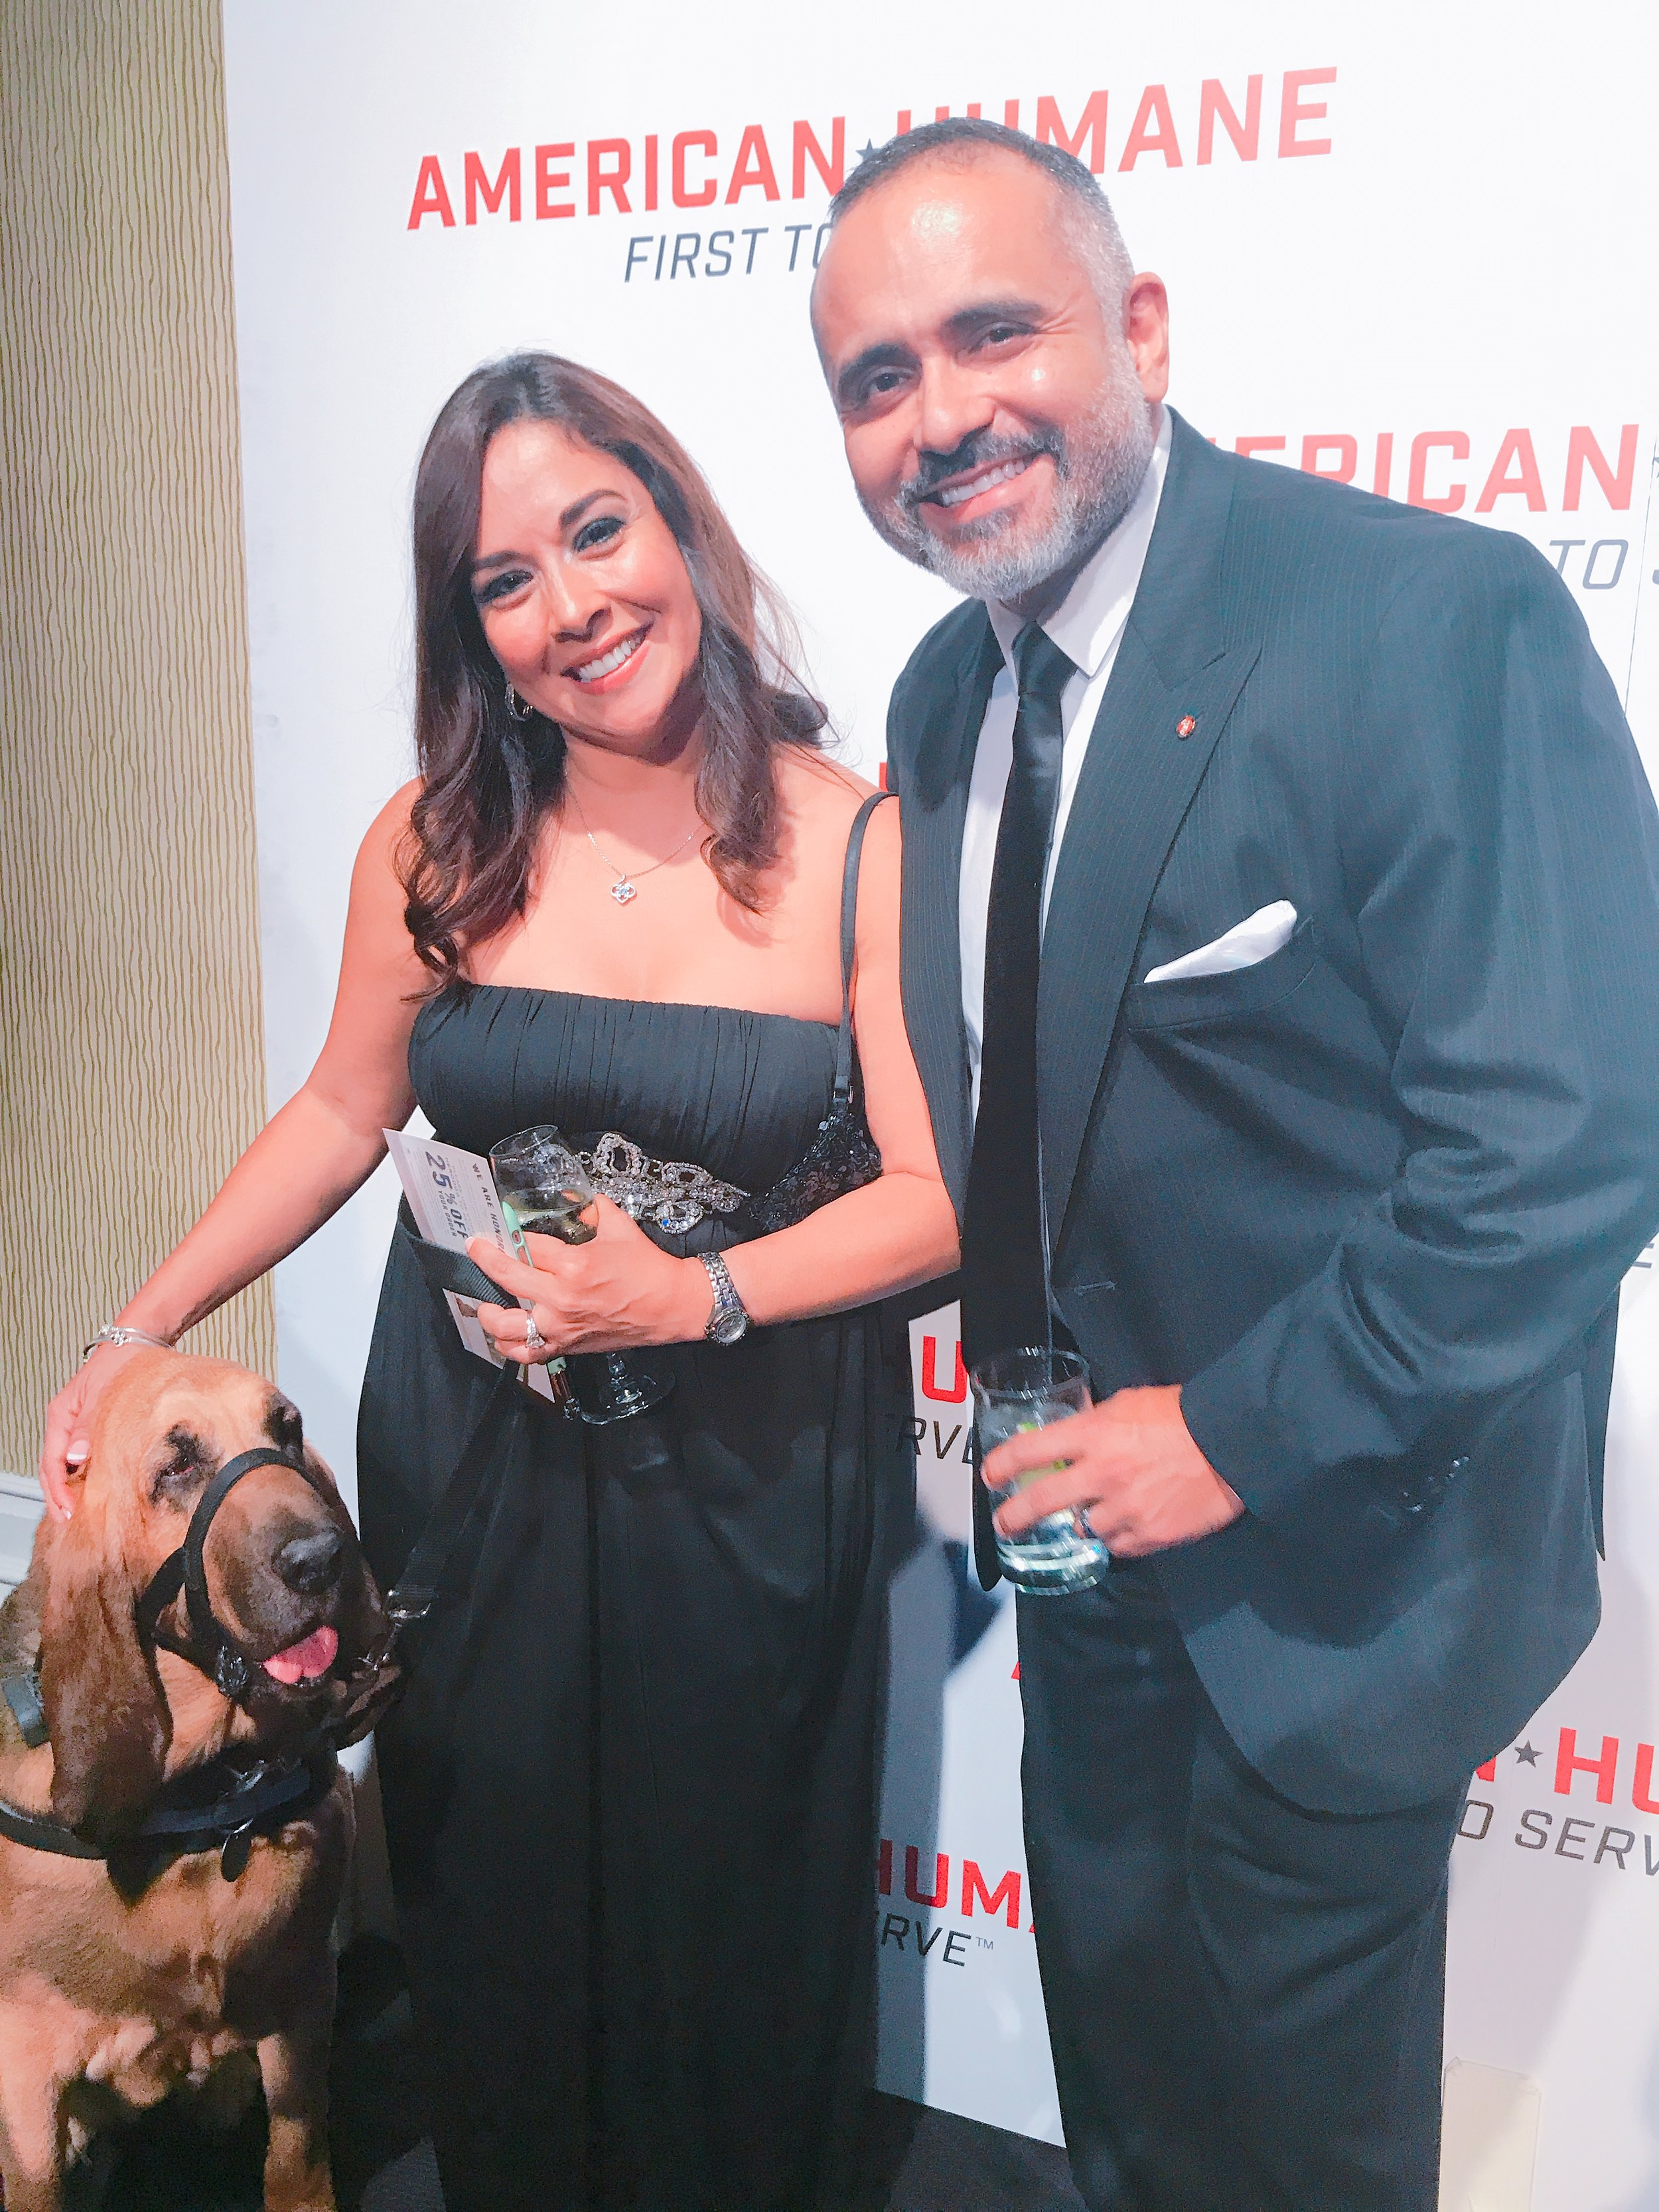 Norma and I at the awards...